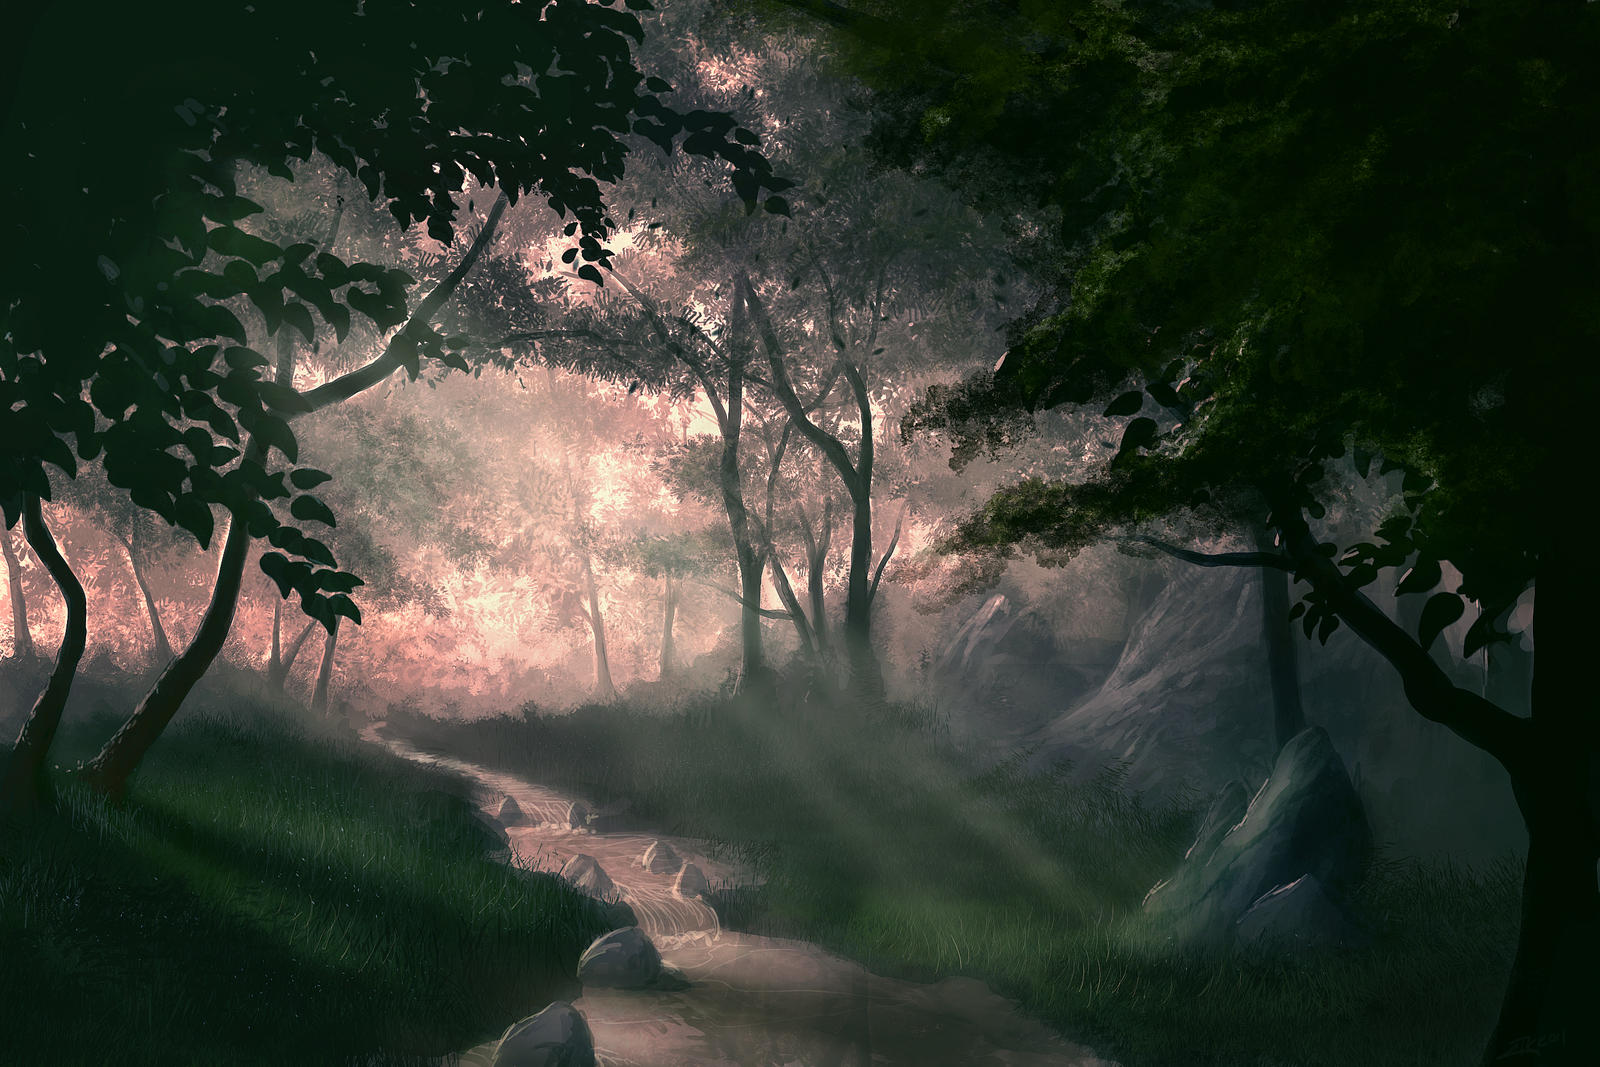 Mystic Forest 2 by Antichristofer